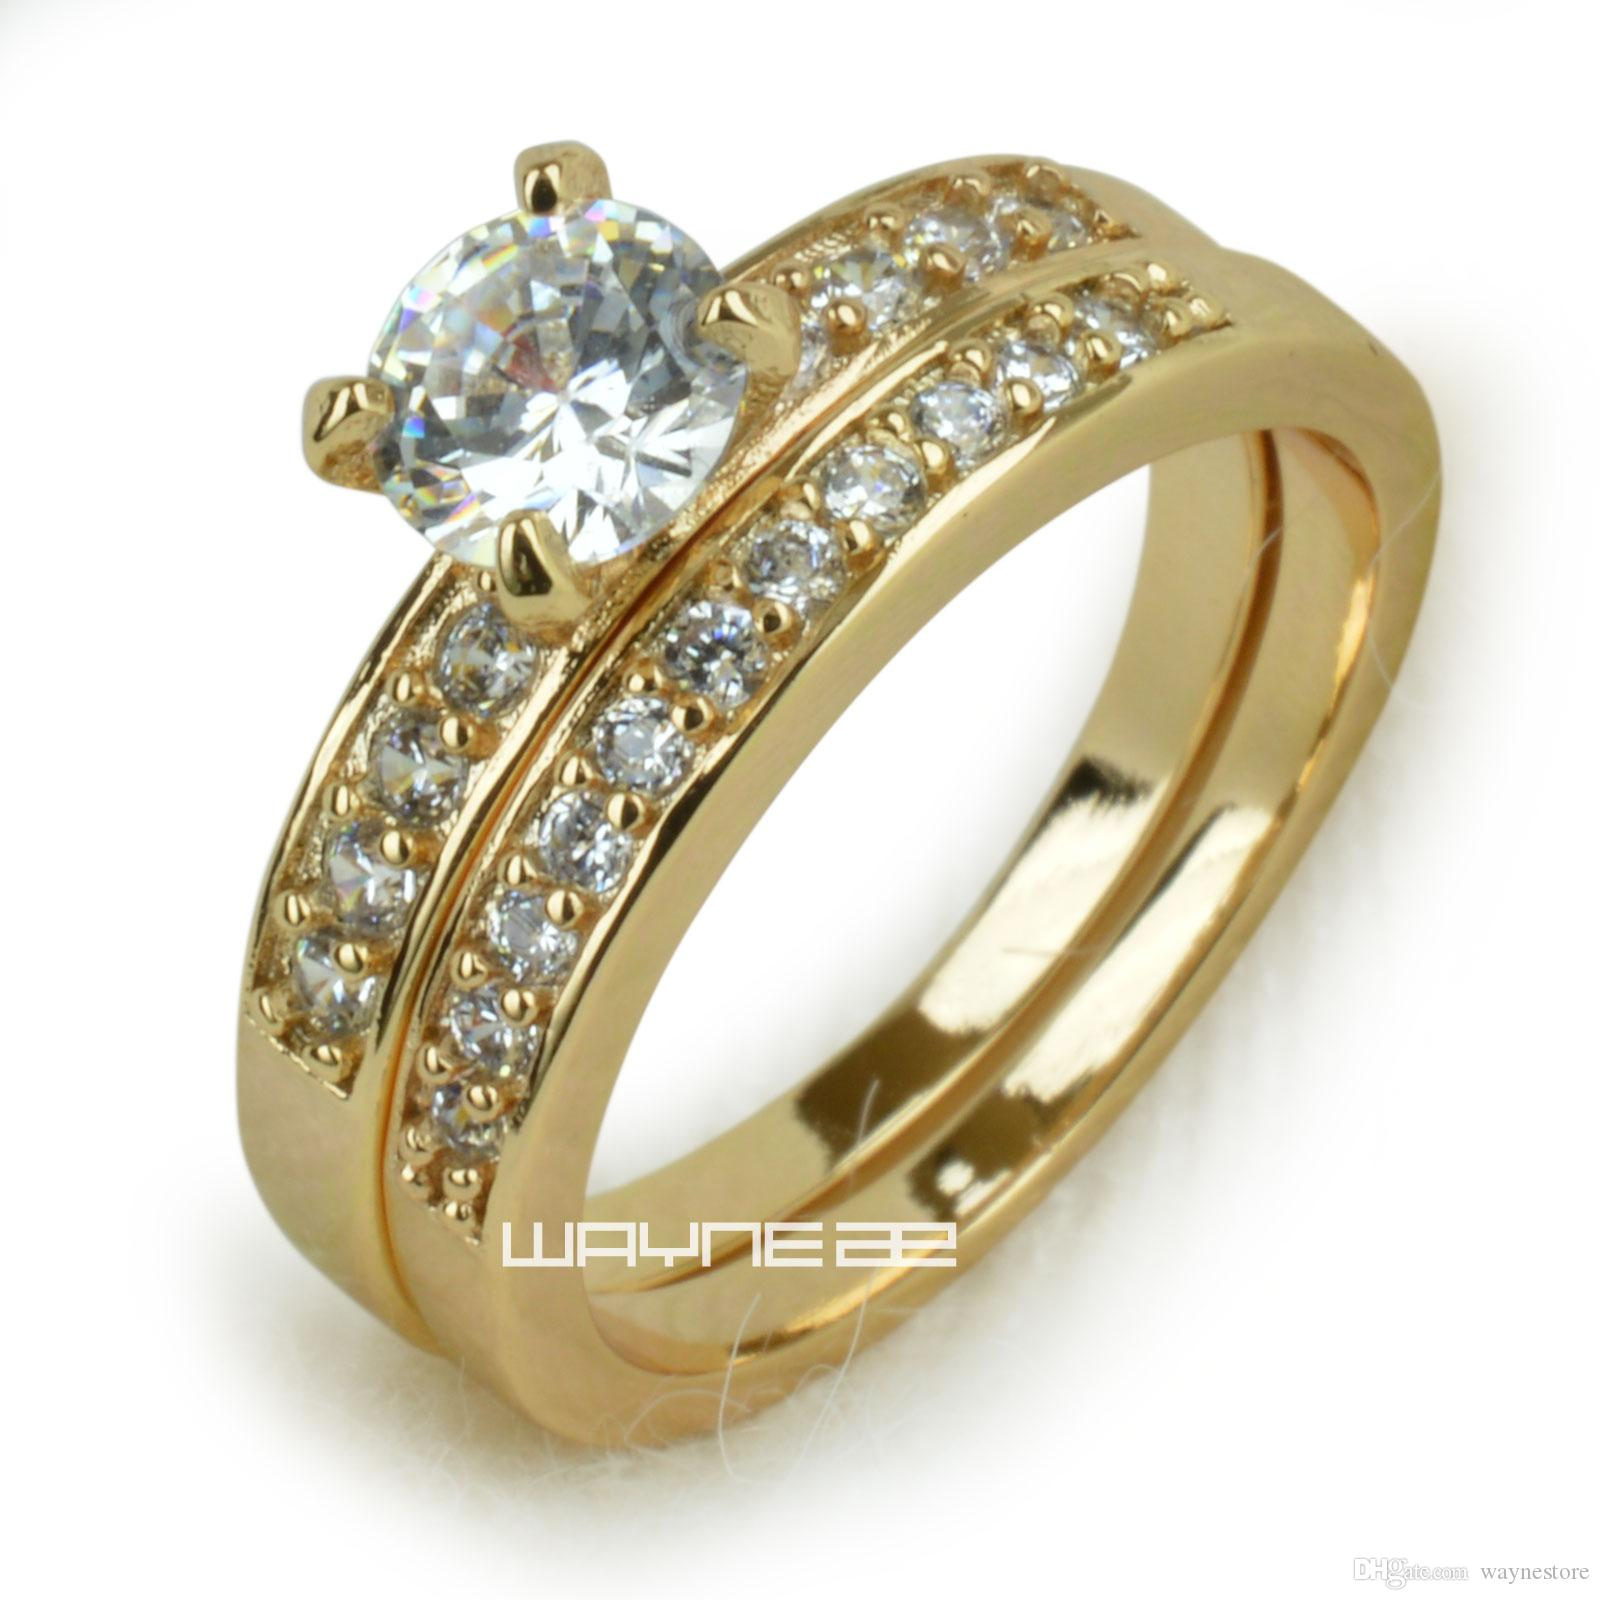 diamond product turgeon engagement raine gold rings yellow ring